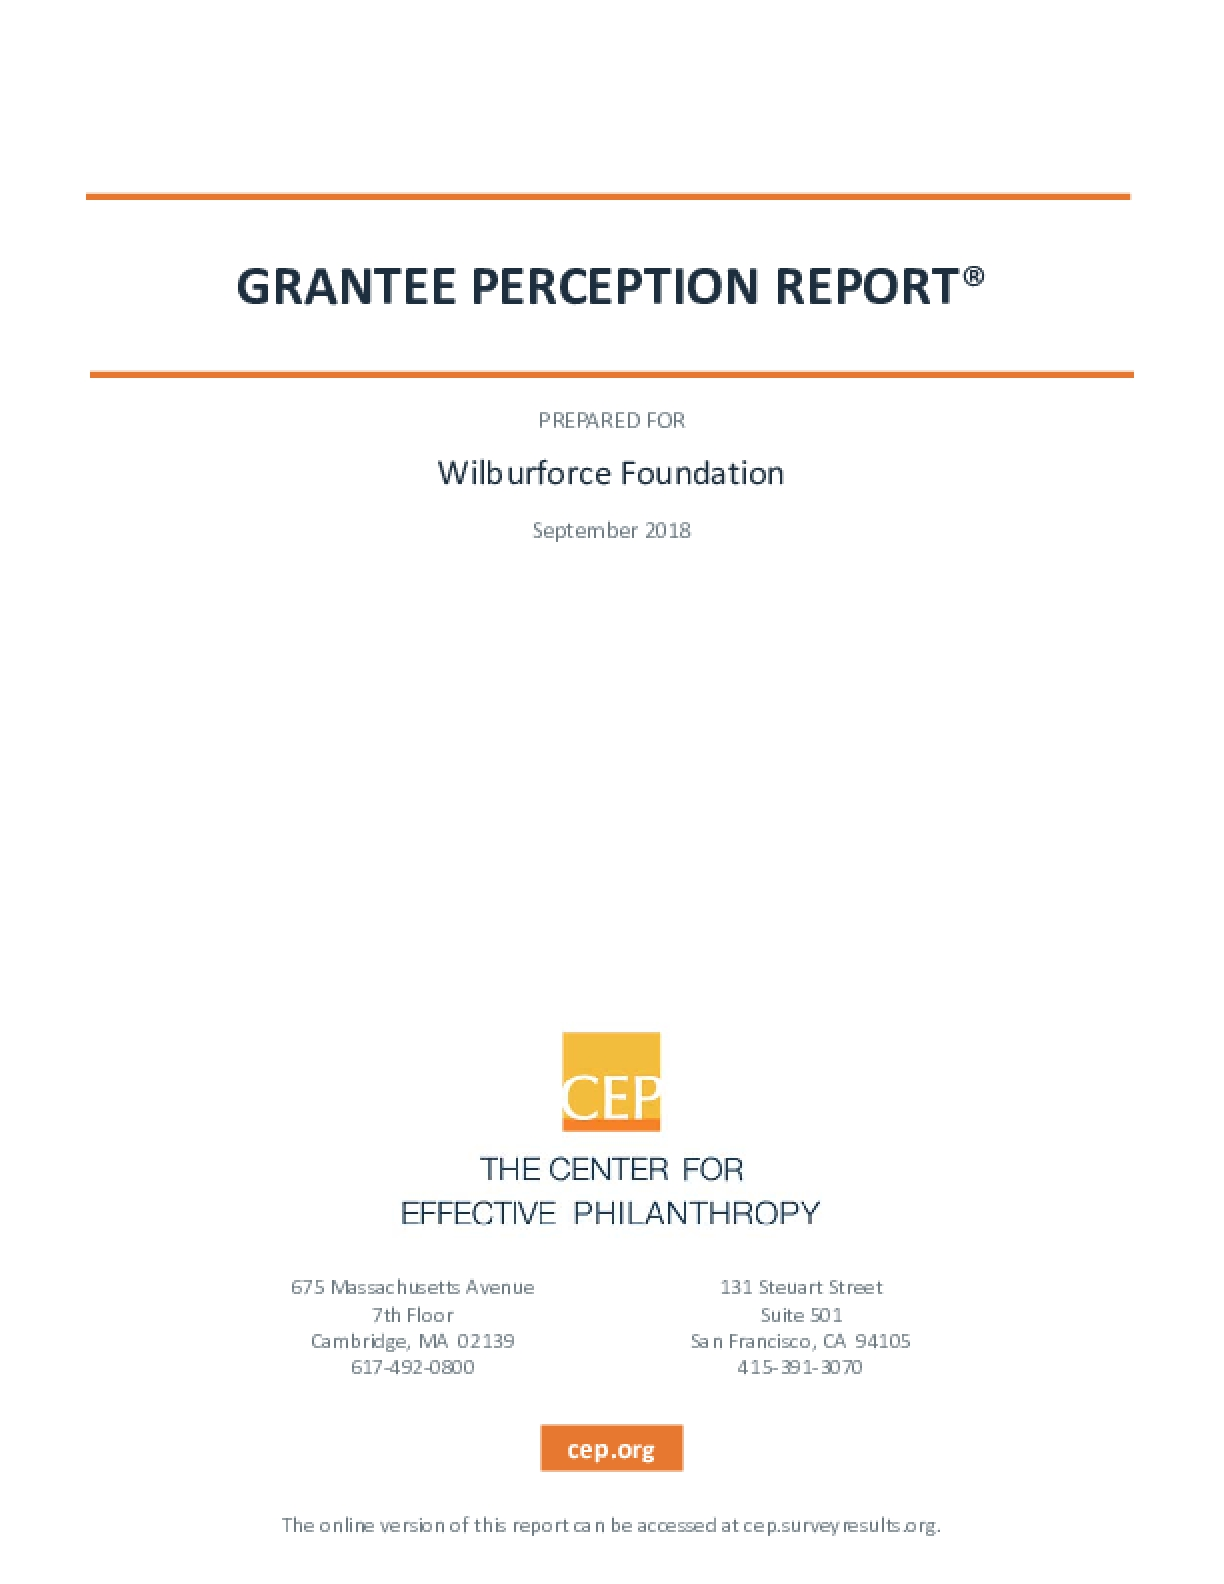 2018 Grantee Perception Report: Wilburforce Foundation